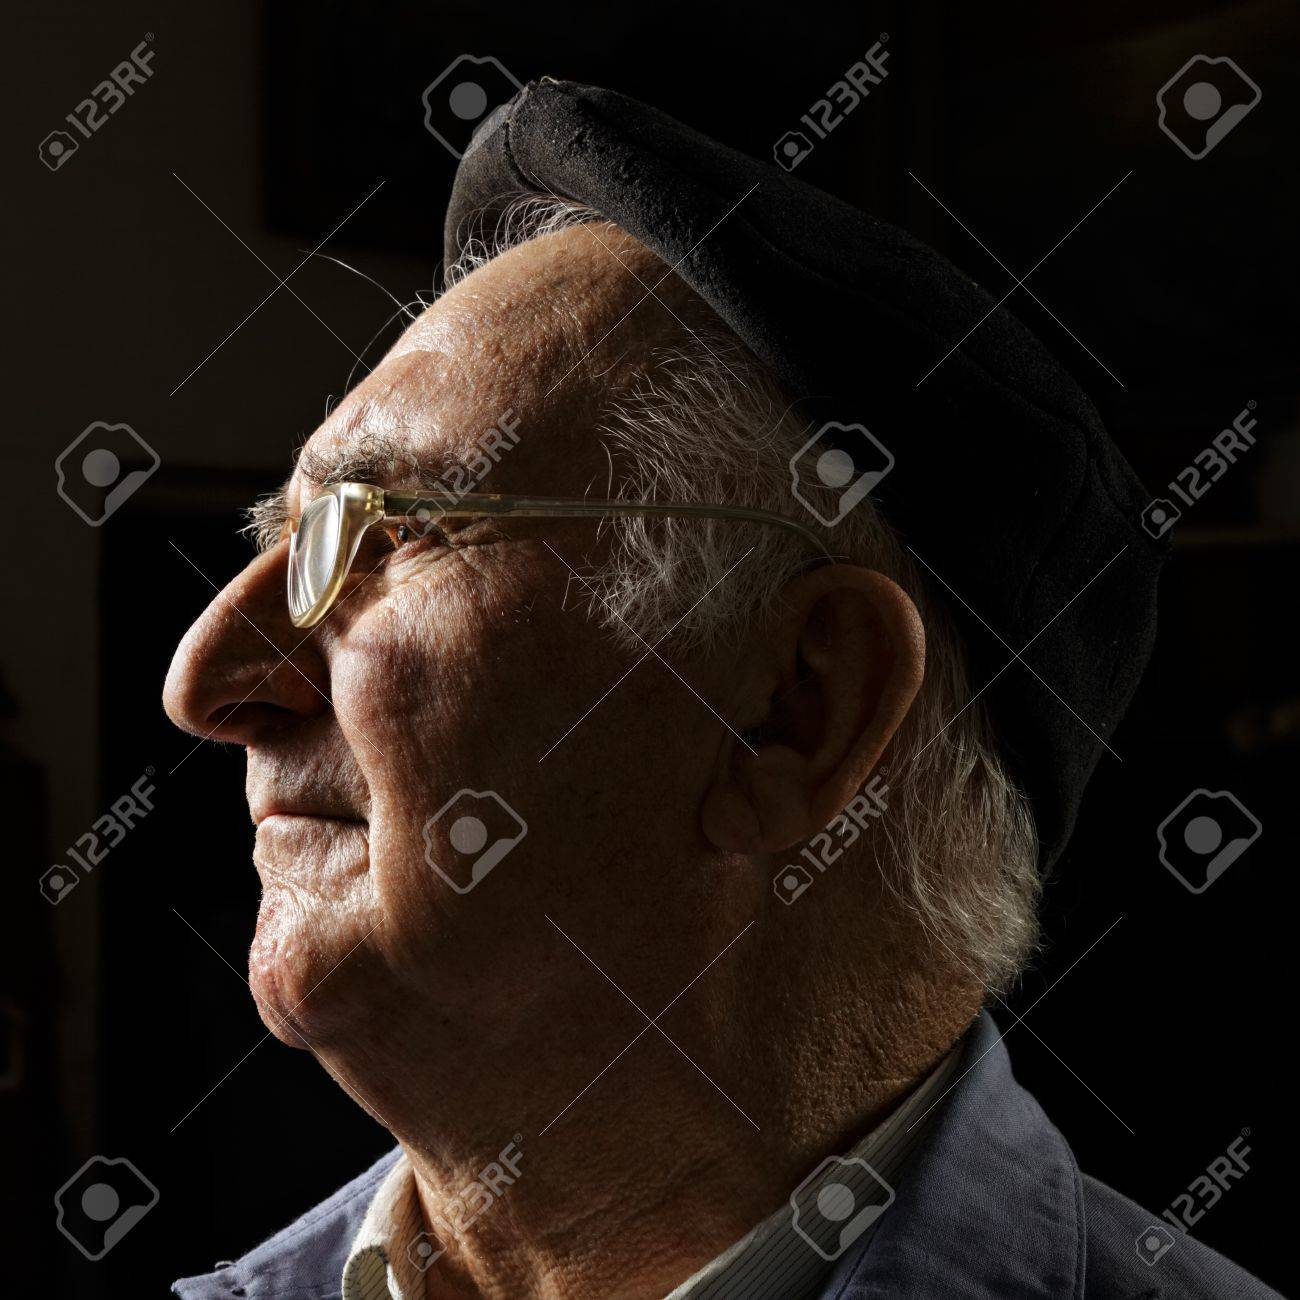 Senior in cap and eyeglasses sideview head and shoulders portrait Stock Photo - 15862888